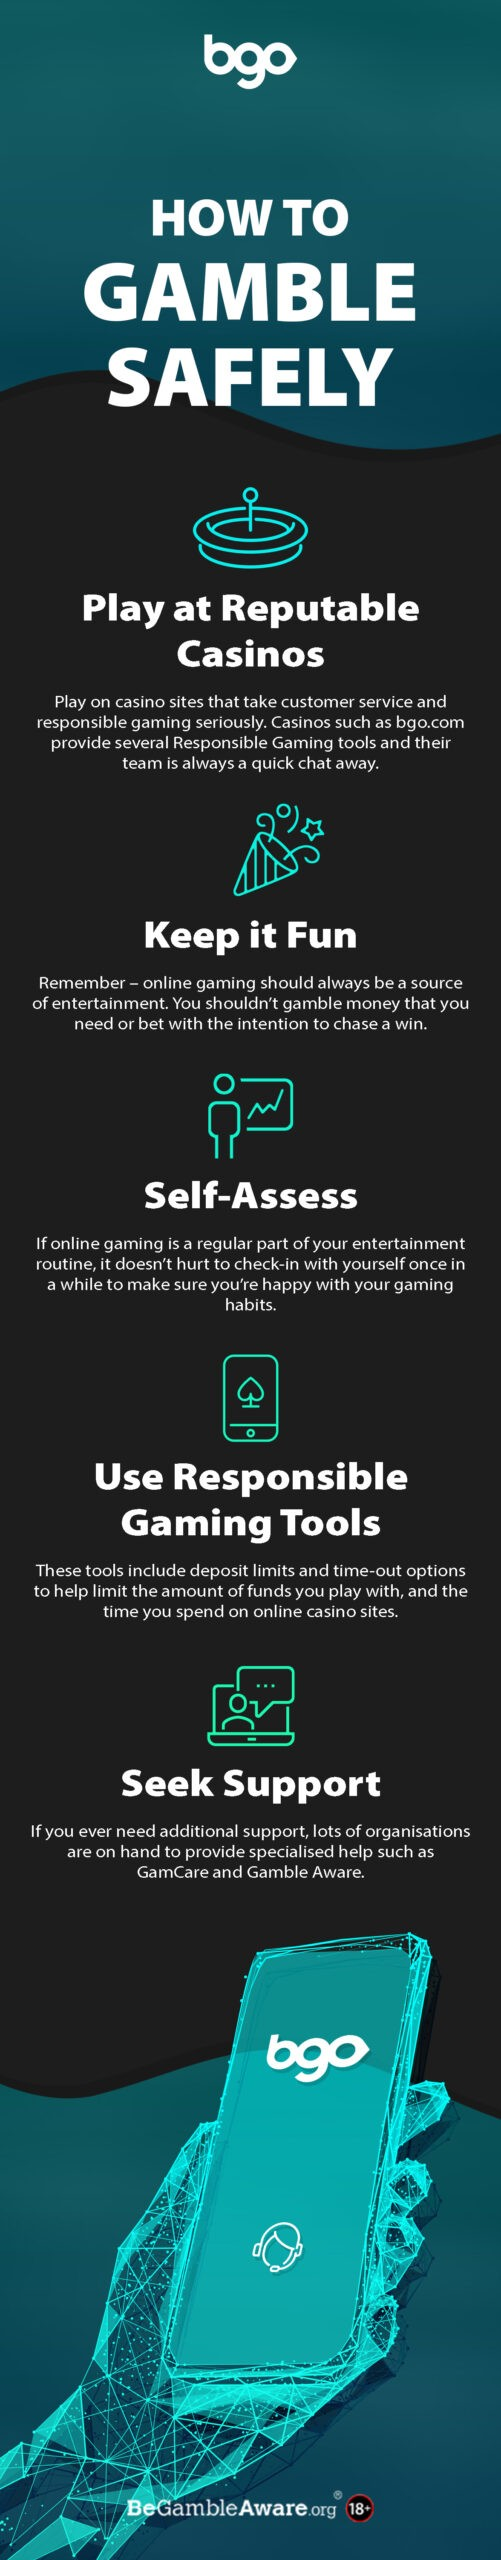 How to Gamble Safely Infographic scaled